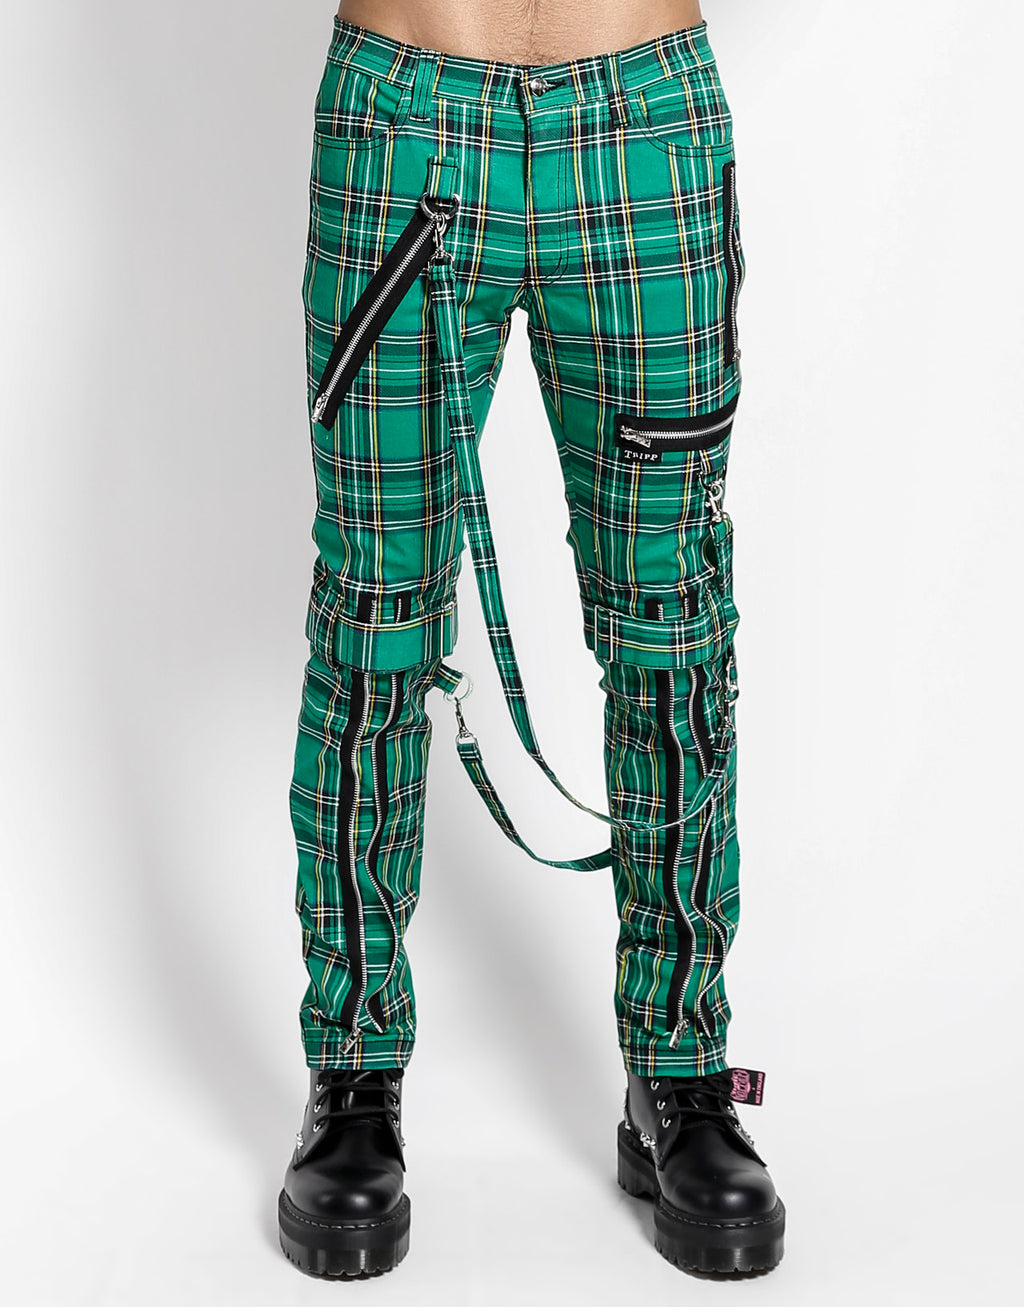 Tripp NYC Men's Plaid Bondage Pants - Green